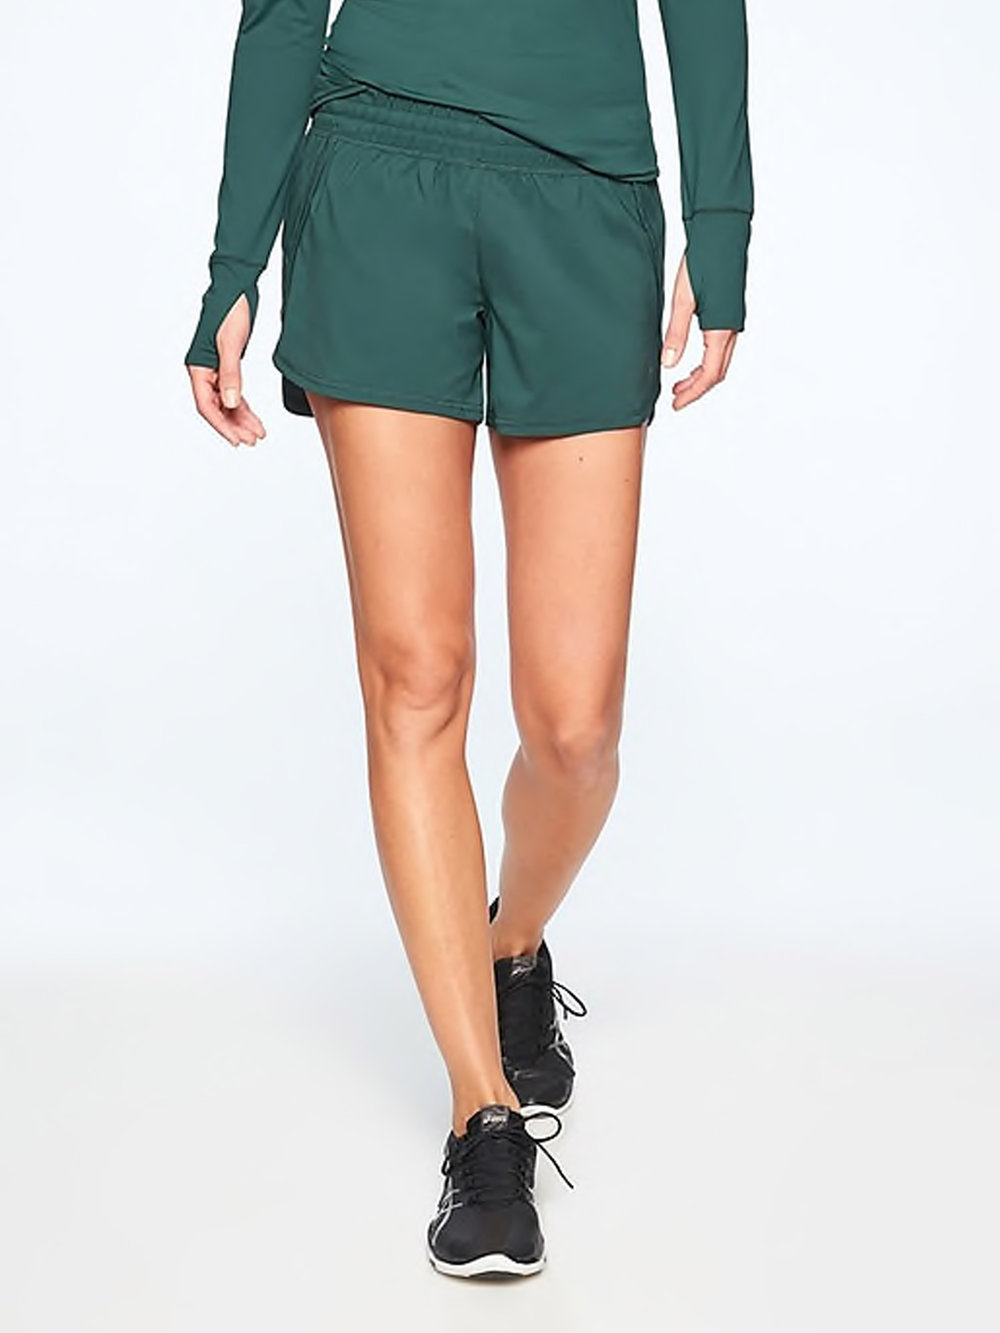 Athleta Shorts - $39